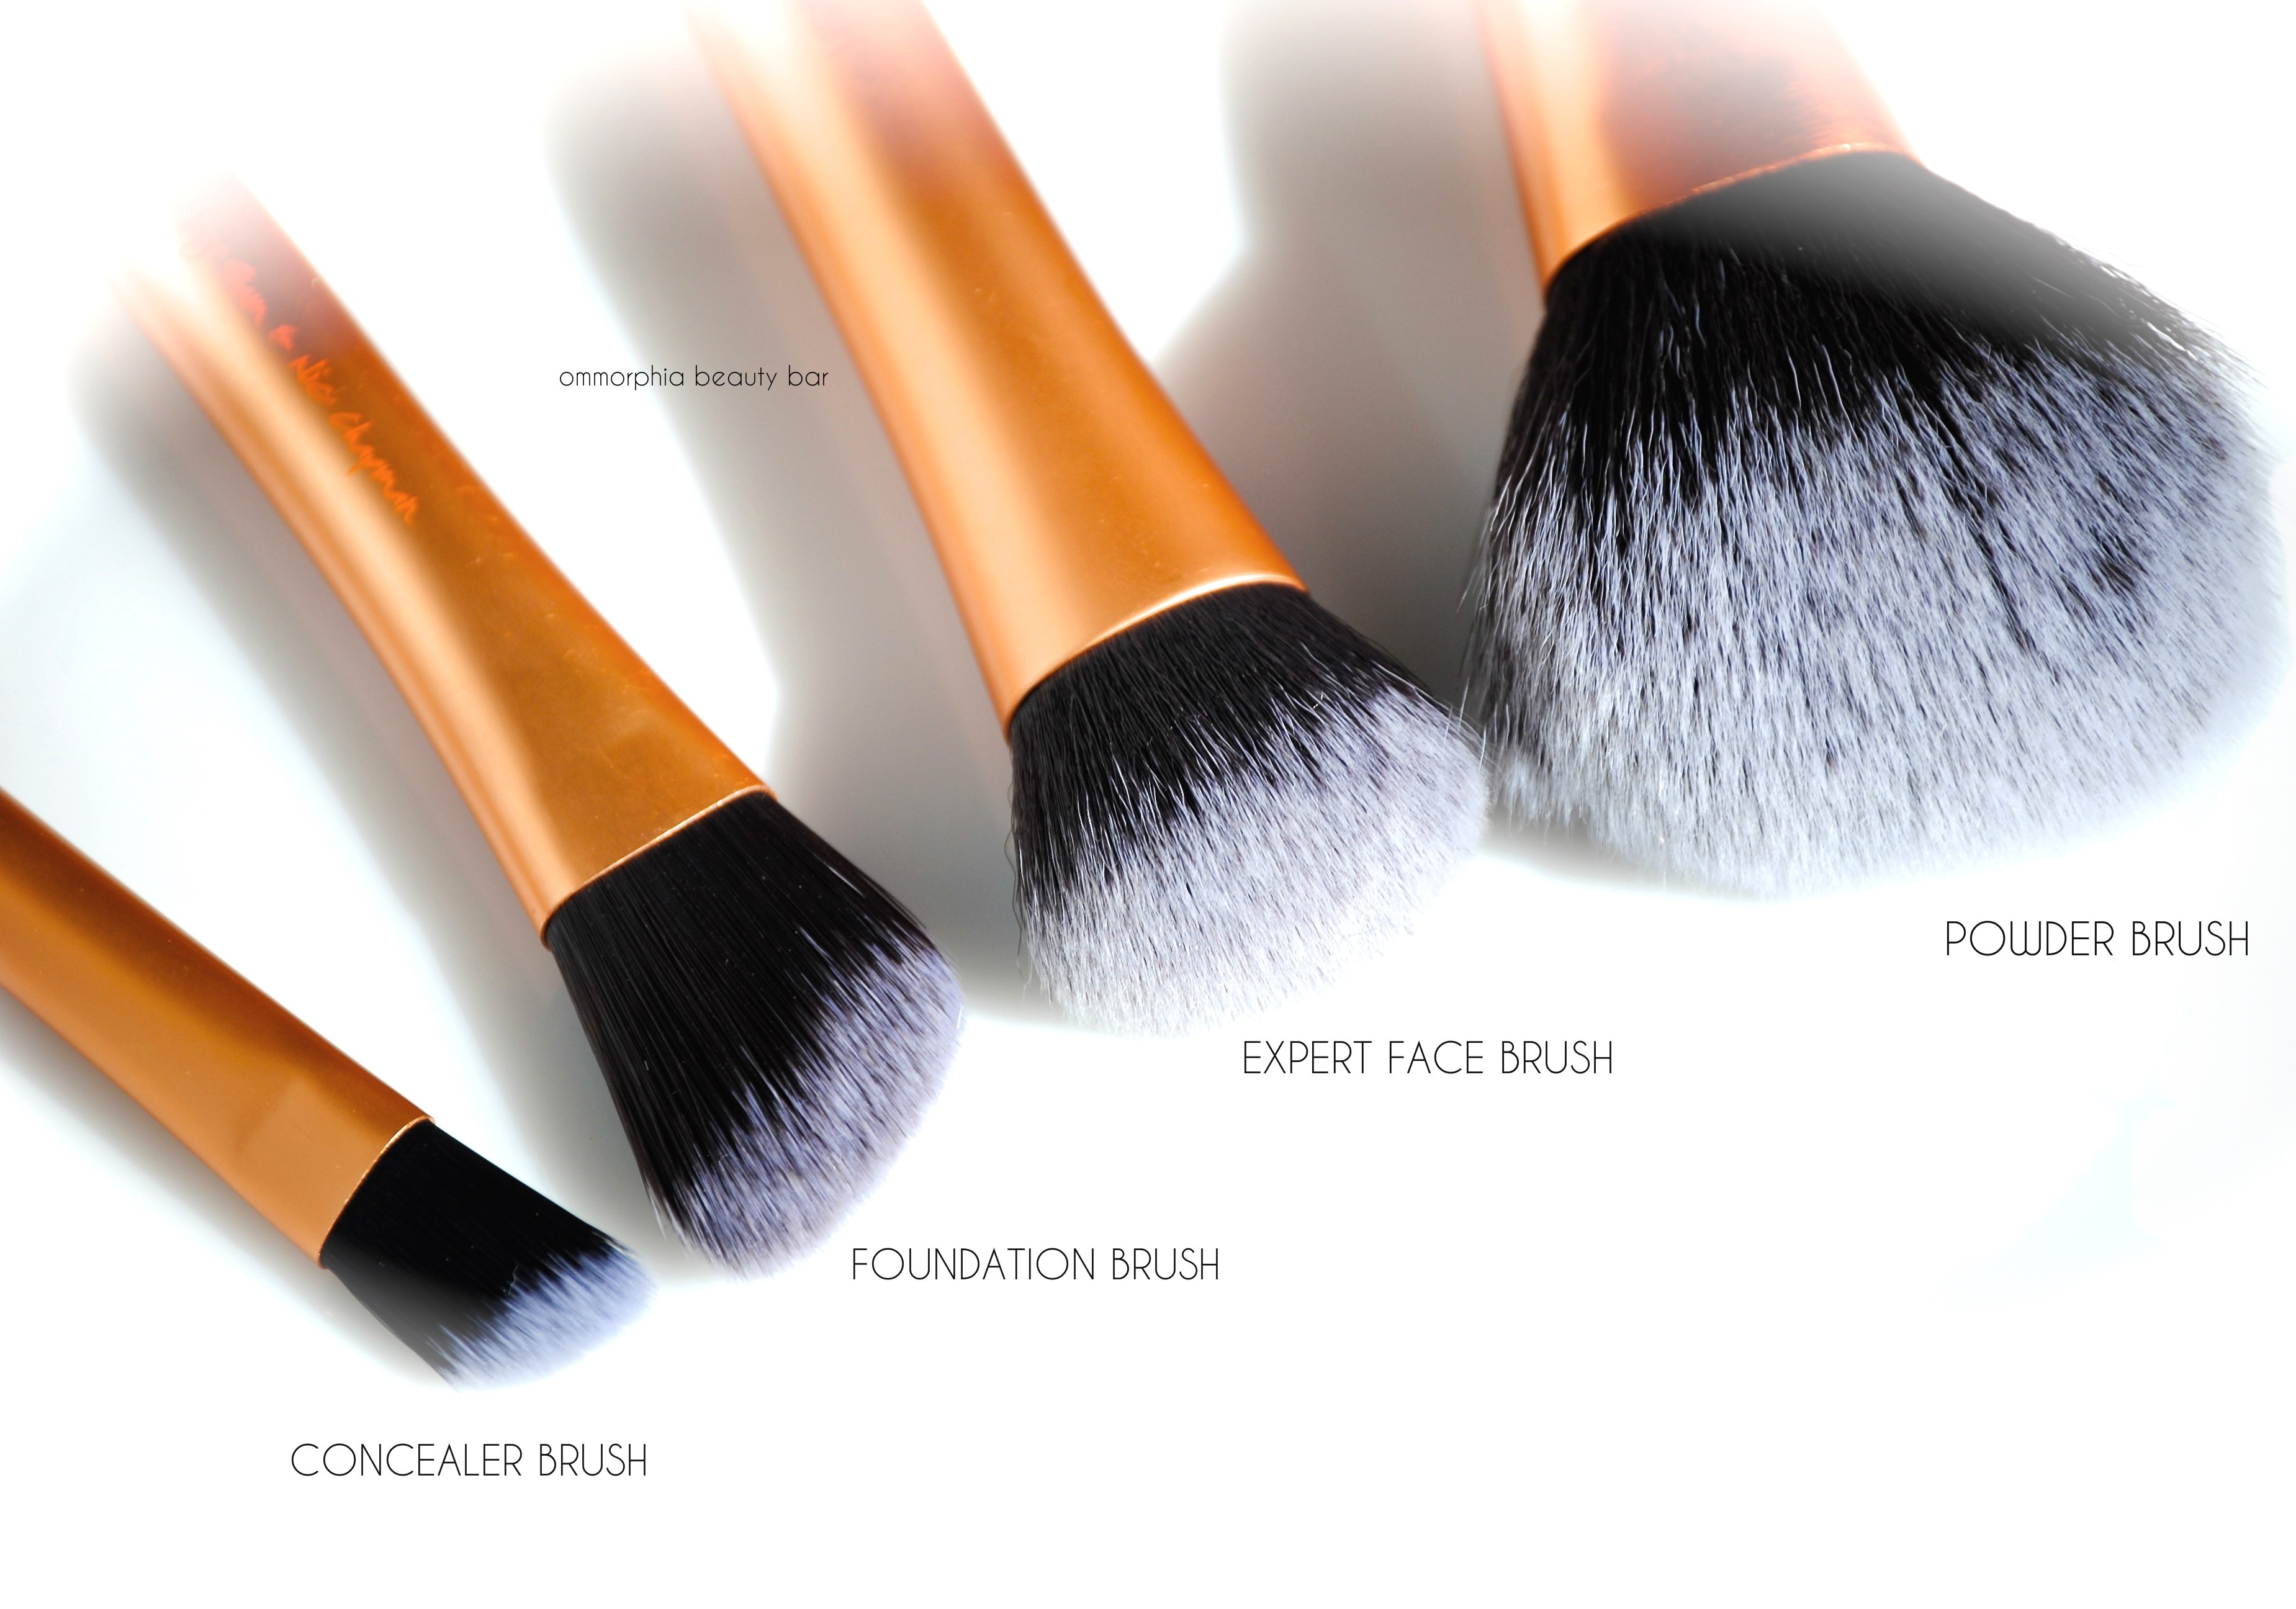 Real Techniques Expert Face Brush real techniques makeup brushes ...